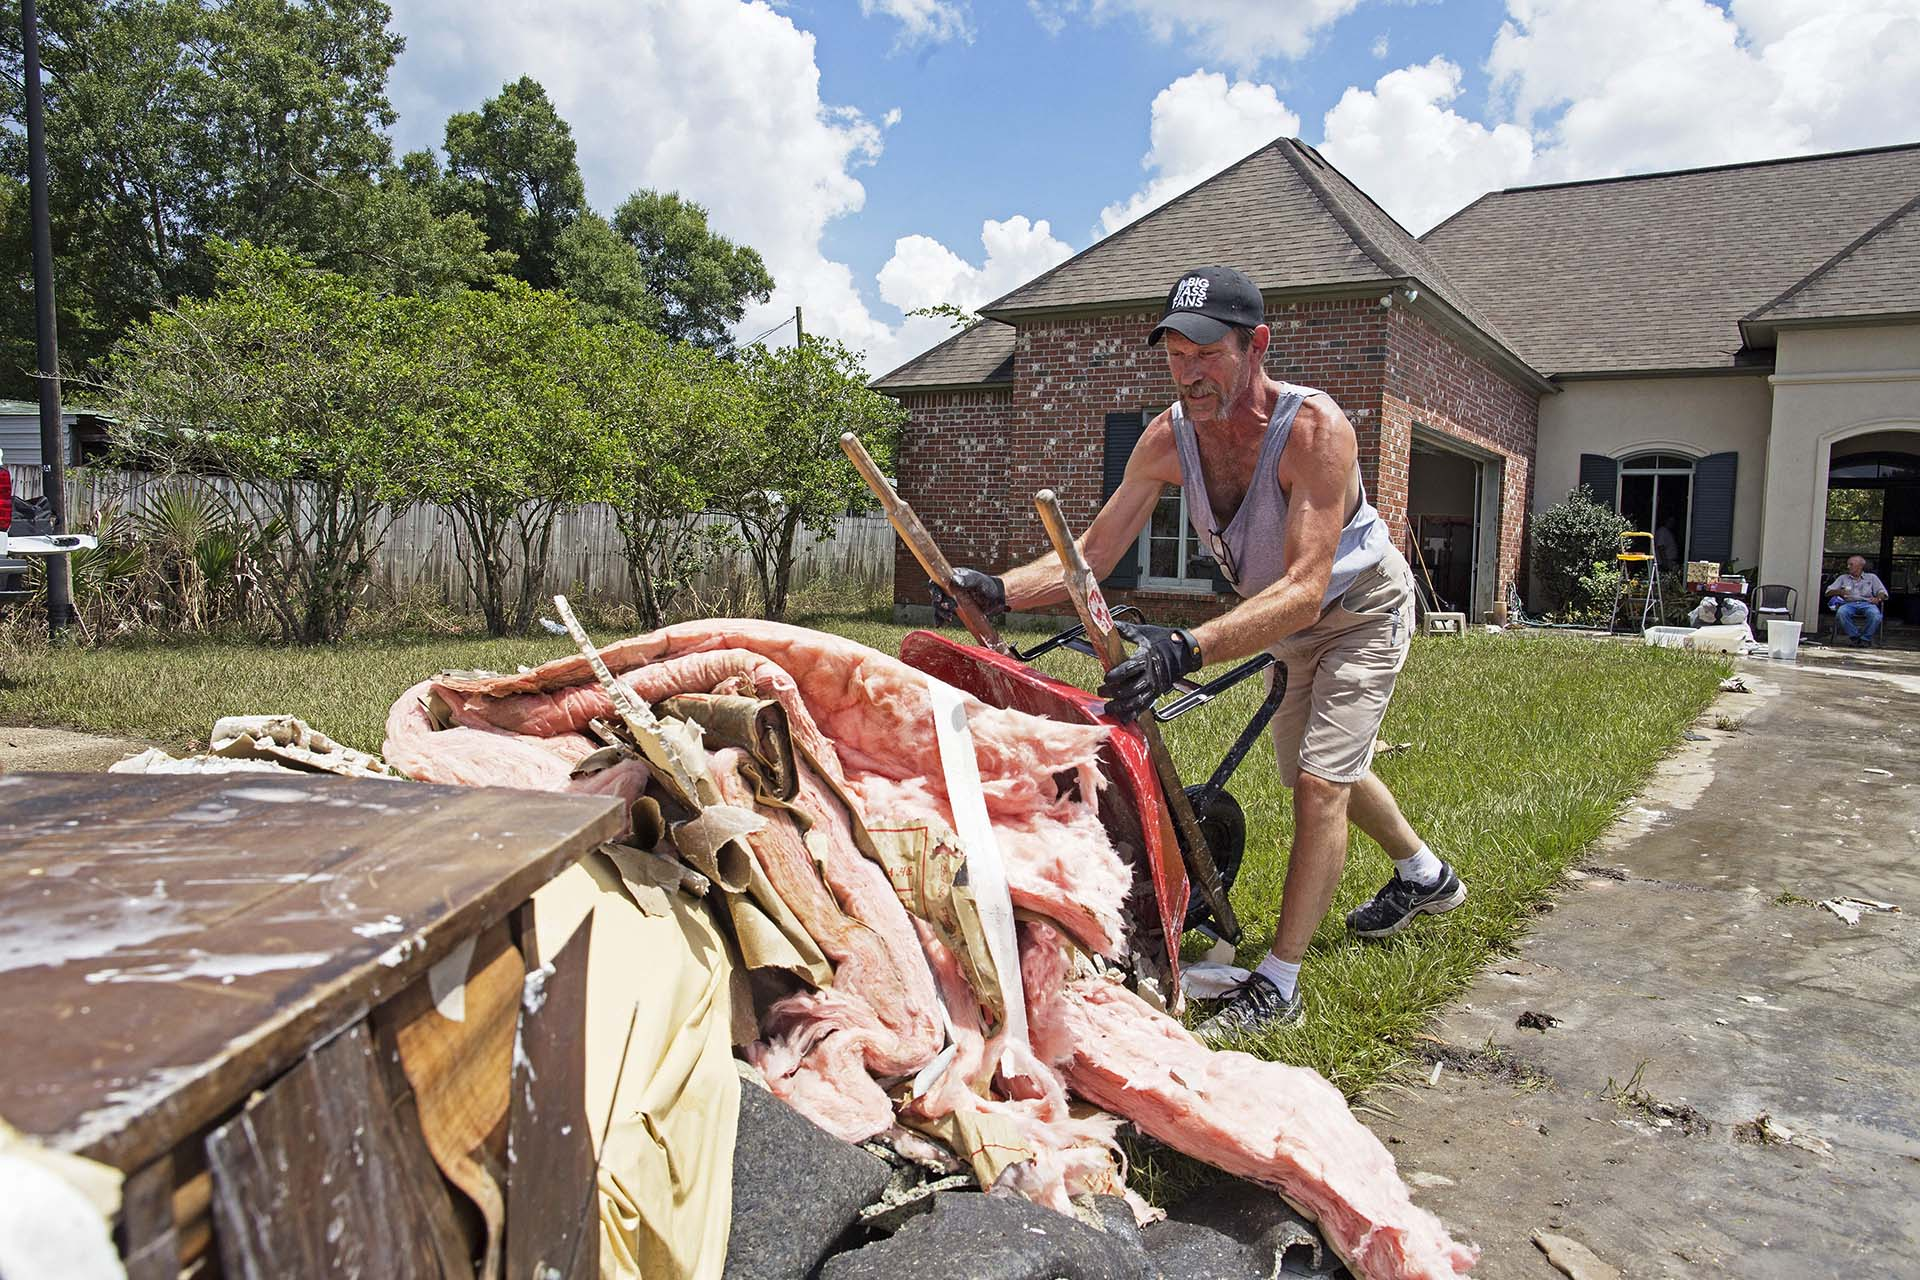 Jody Harelson, 52, dumps a wheel barrel of wet sheet rock an ever growing pile of rubbish as he helps clean out the flood damaged home of Sheila Siener, 58, in St. Amant, La., Saturday, Aug. 20, 2016.  Louisiana continues to dig itself out from devastating floods, with search parties going door to door looking for survivors.  (AP Photo/Max Becherer)